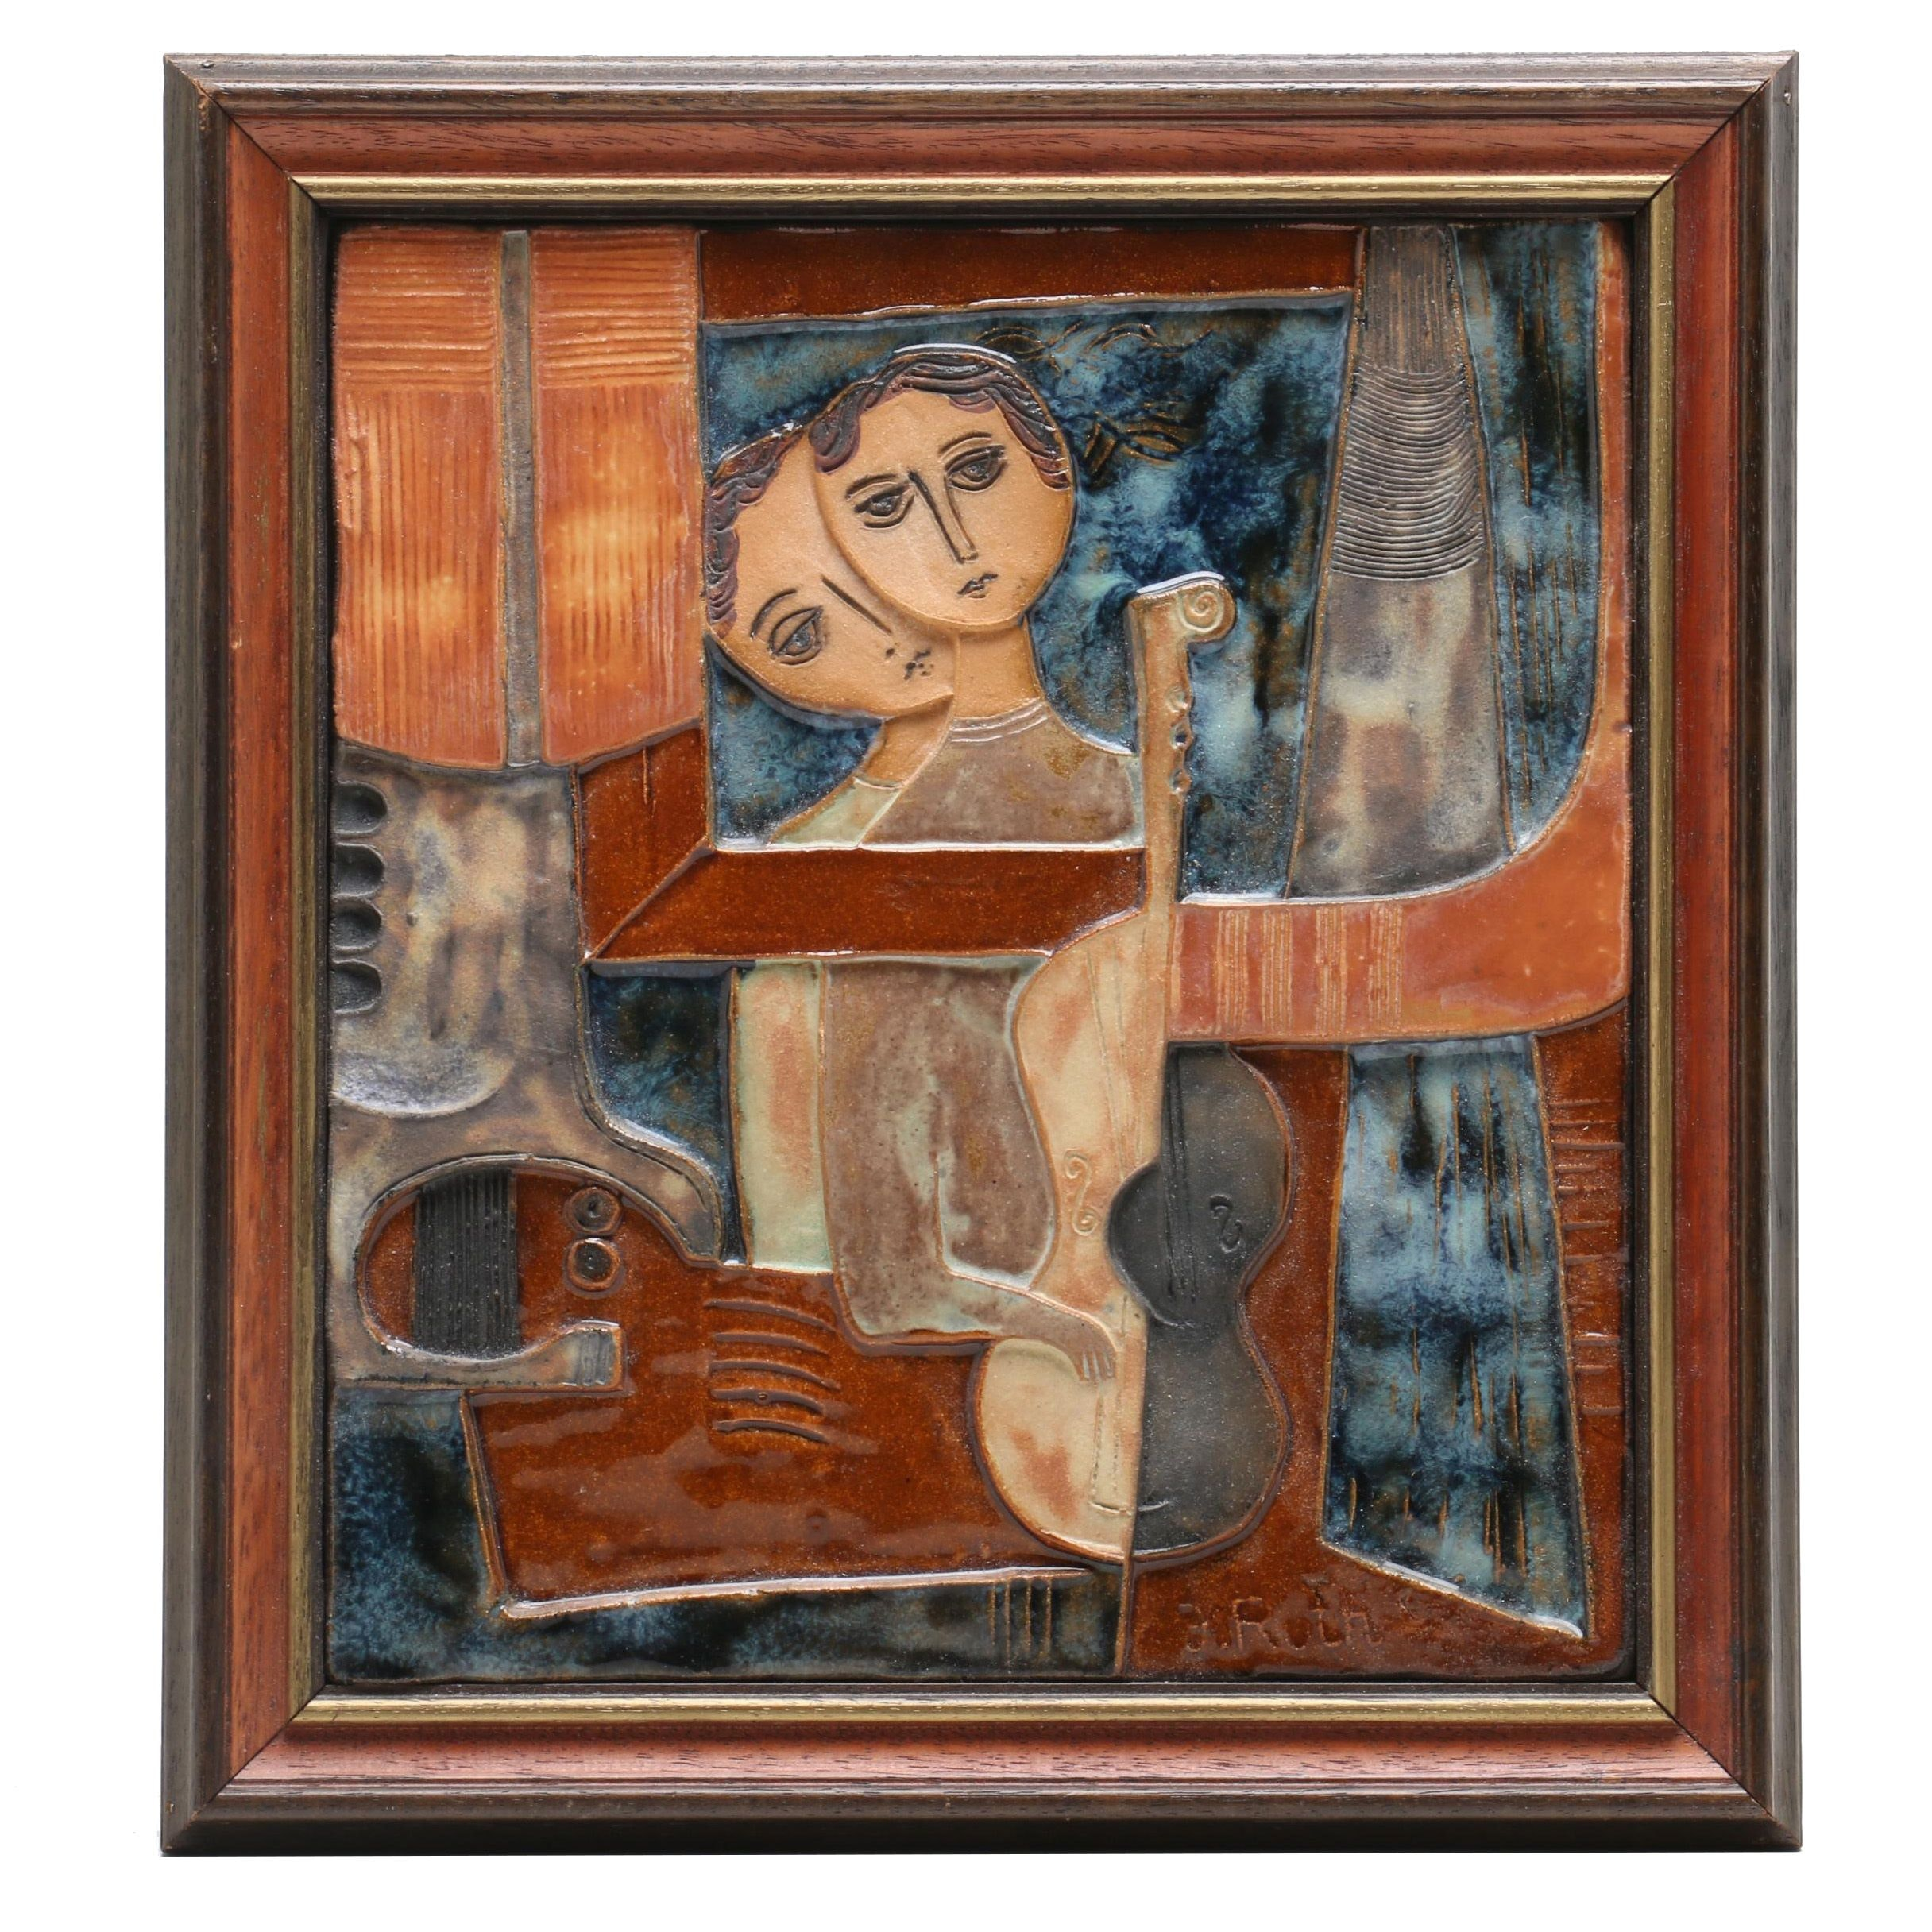 Ruth Faktor Framed Stoneware Bas Relief Tile of Figures Playing Music